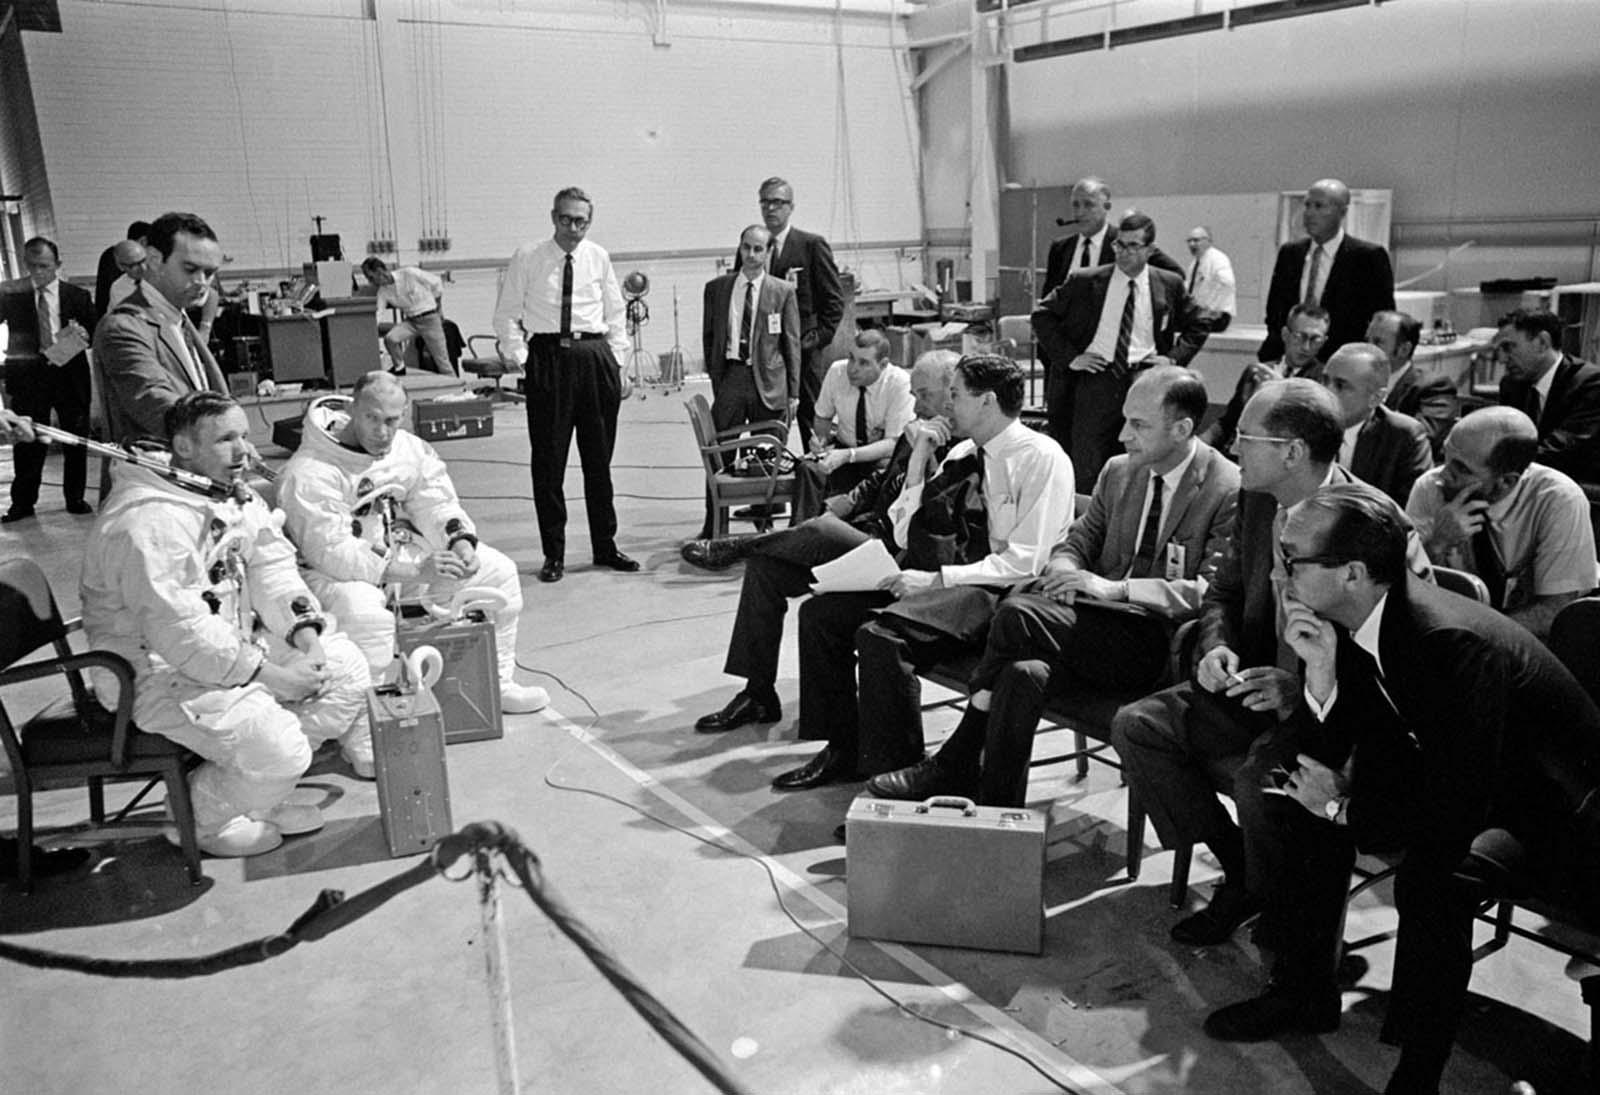 Neil Armstrong (left) and Buzz Aldrin brief NASA managers before a training session described in the crew-training summary as a